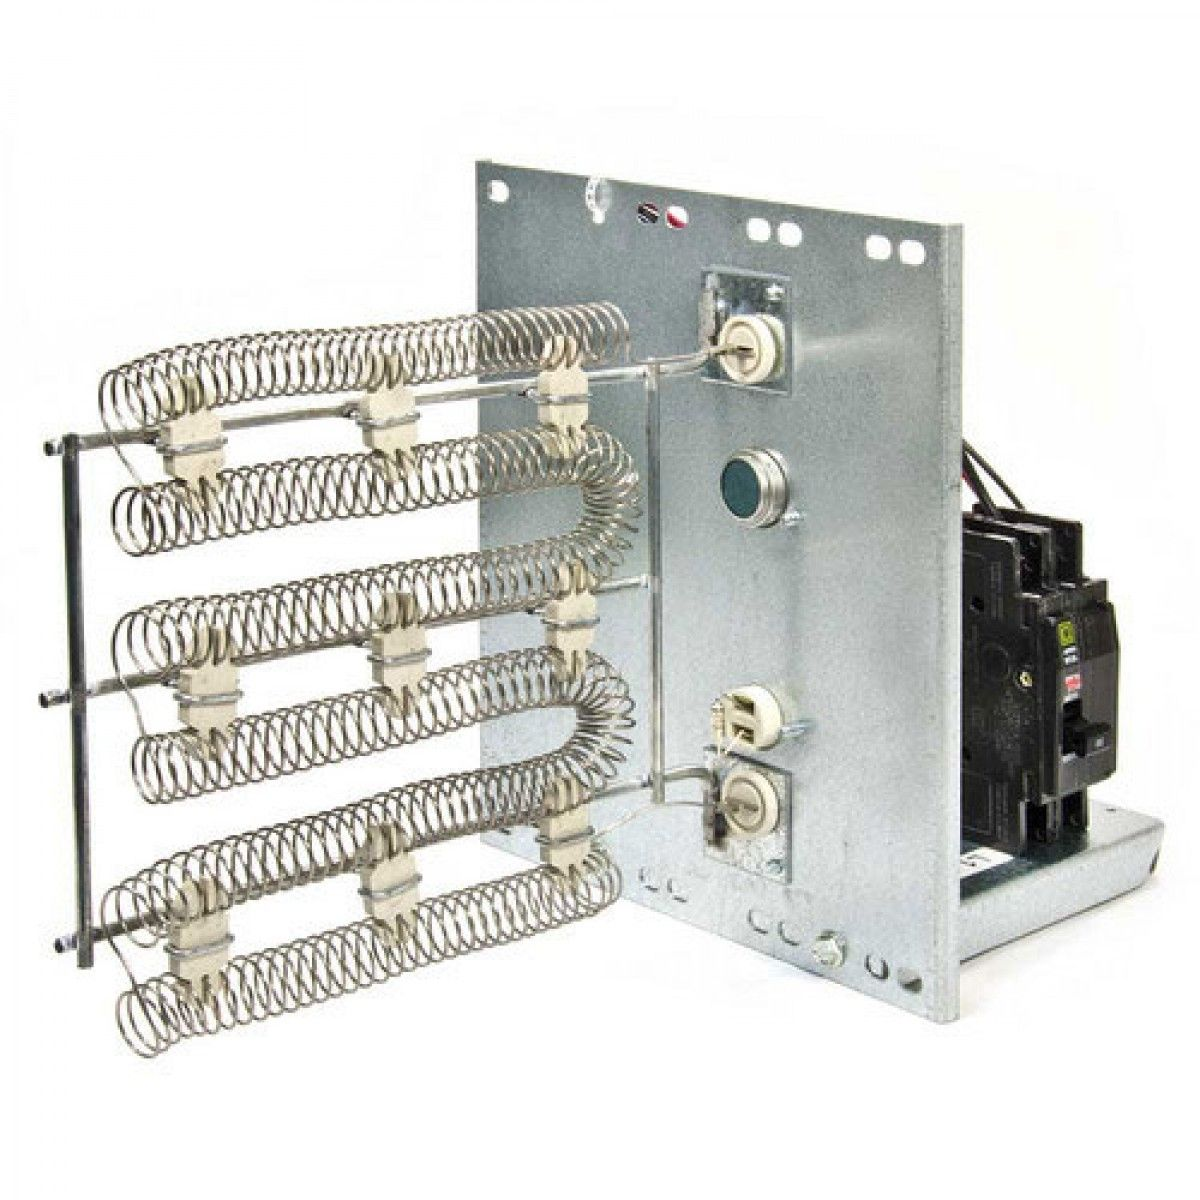 hkr 05c 4_3 5 kw goodman hksx05xc electric heat kits for air handlers in  at crackthecode.co